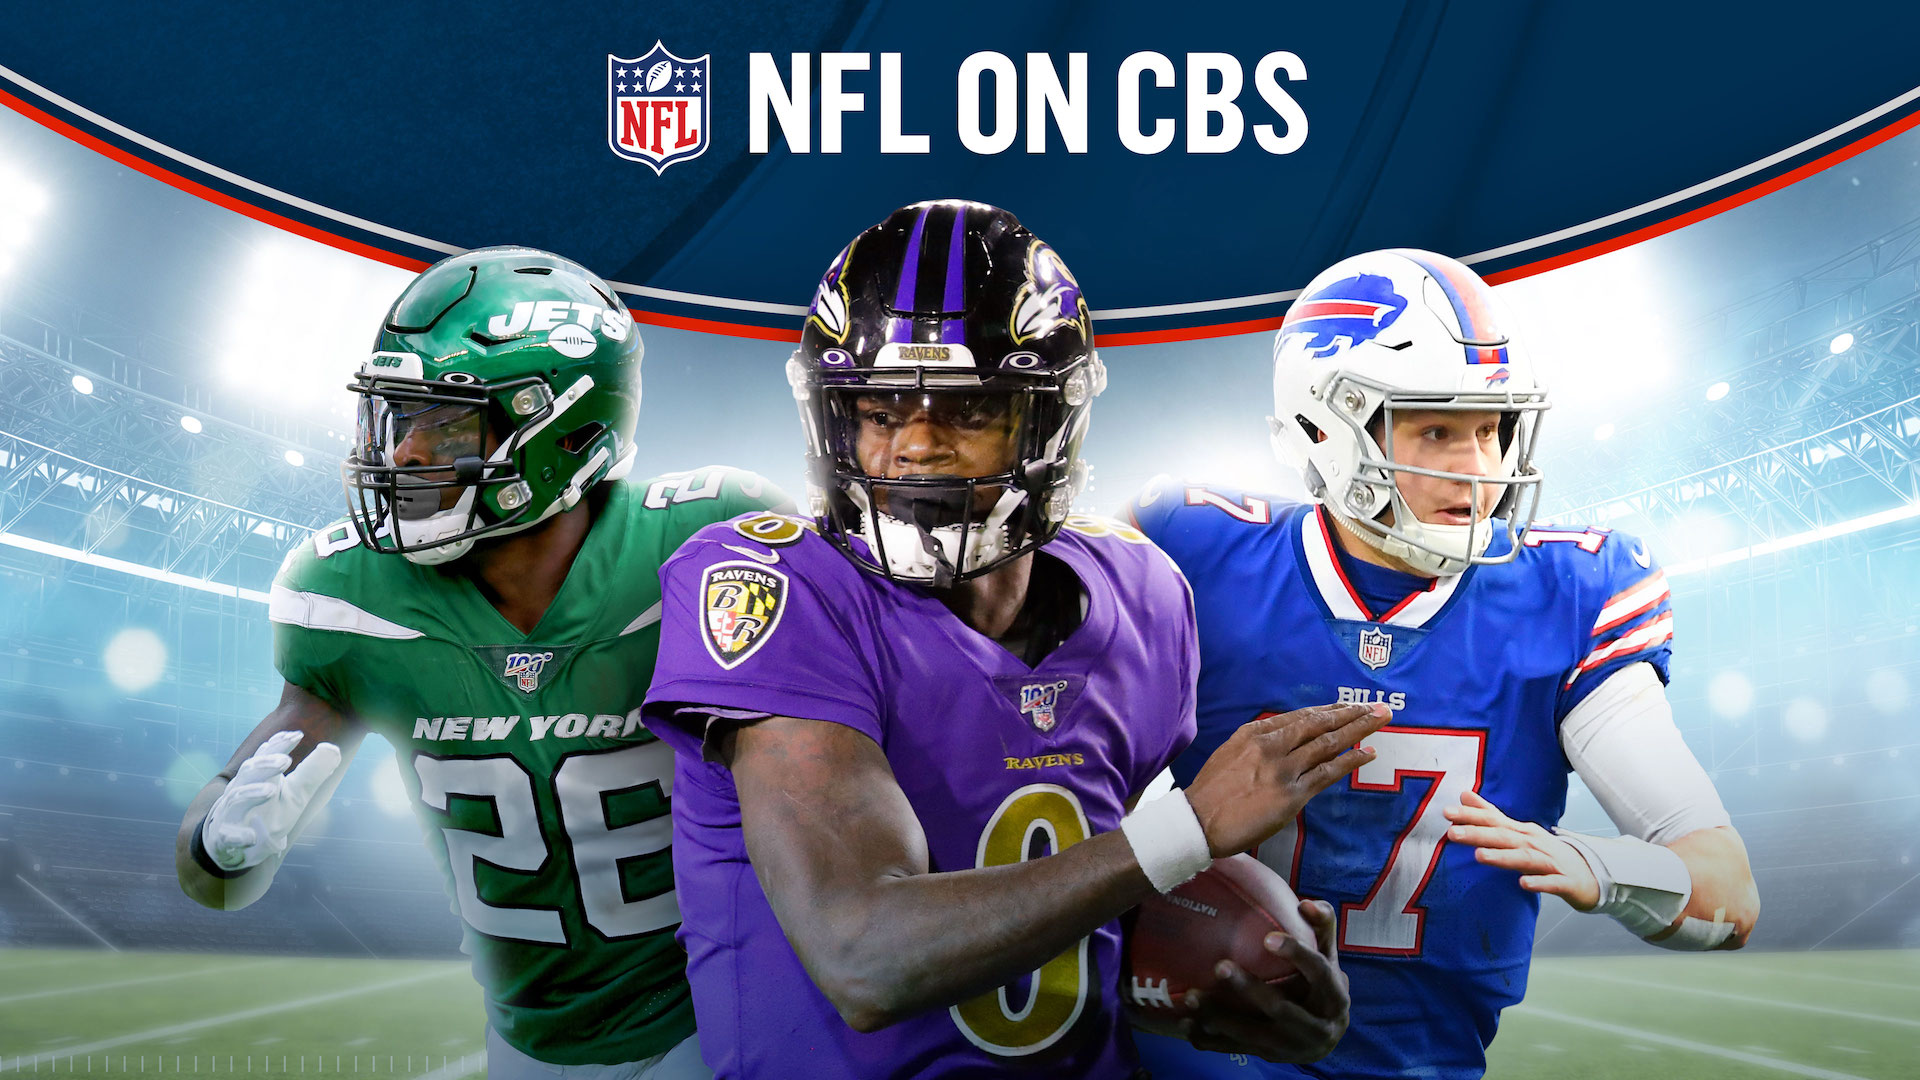 2020 NFL On CBS Schedule: Watch Live Football Games With CBS All Access